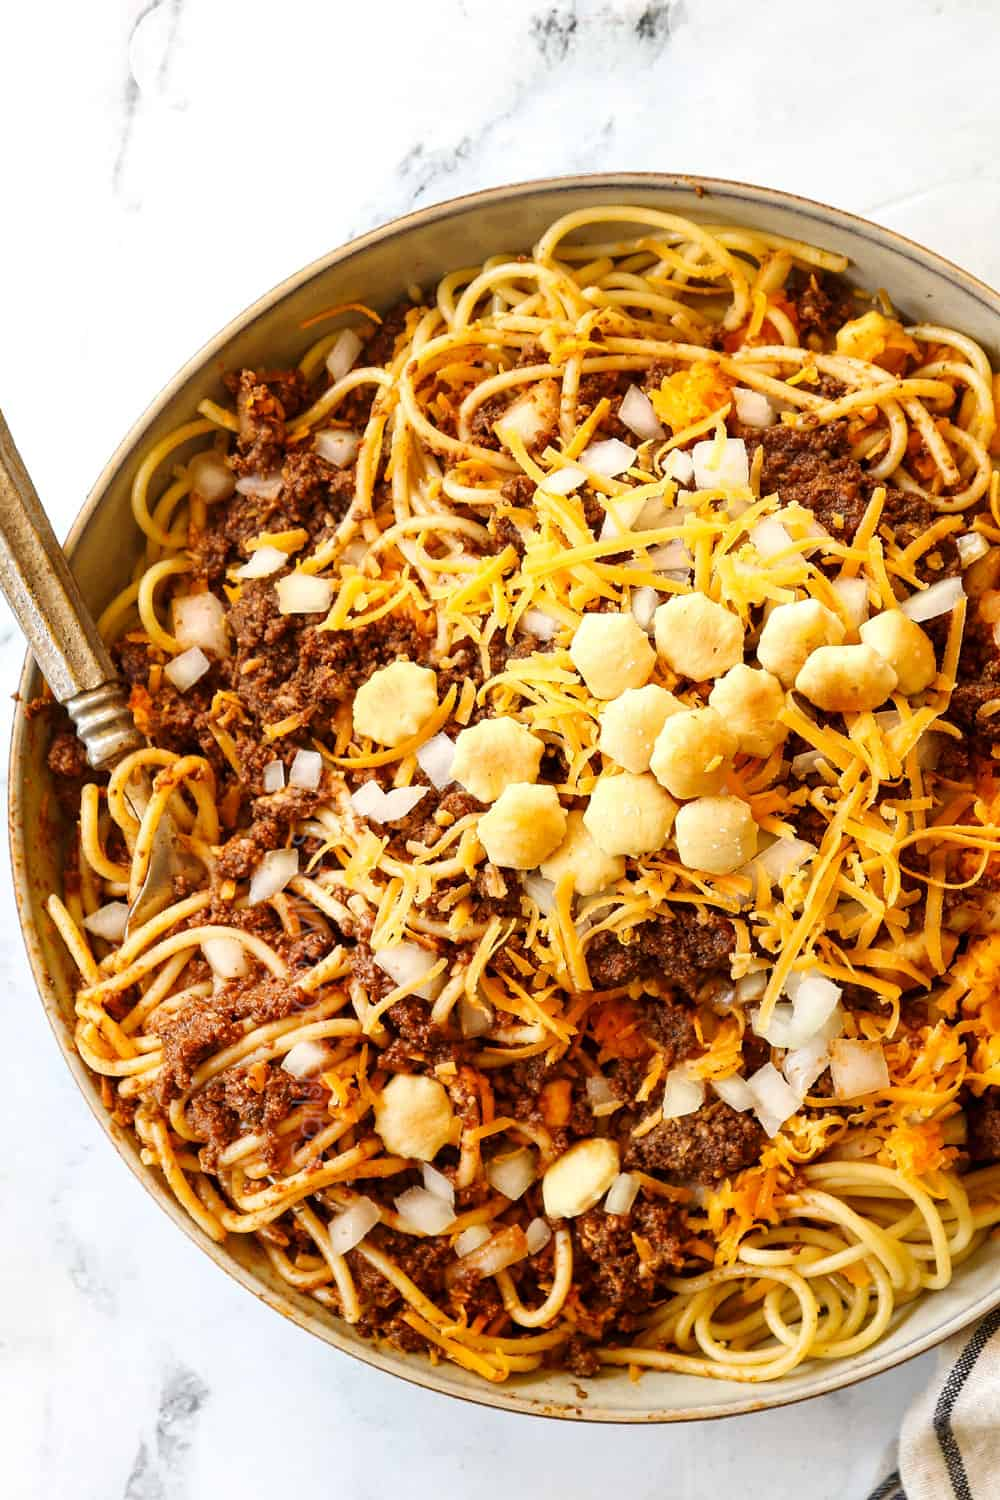 top view of Cincinnati chili served in a bowl over spaghetti with onions and cheese